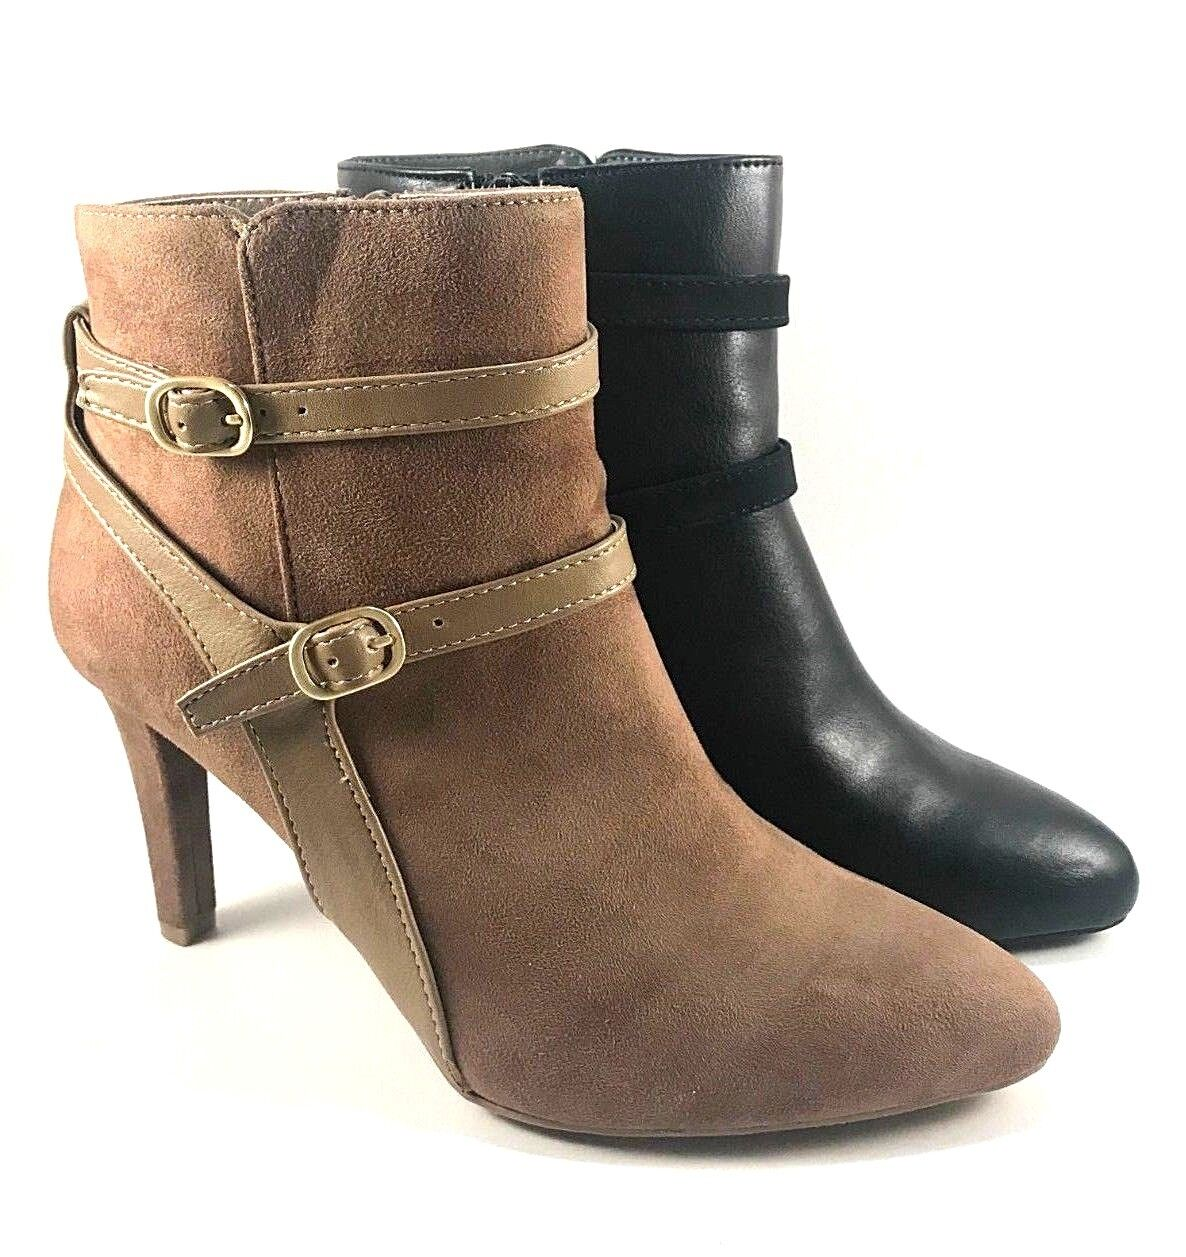 Rialto Caleigh Pointy Toe High Heel Ankle Bootie Choose Sz color